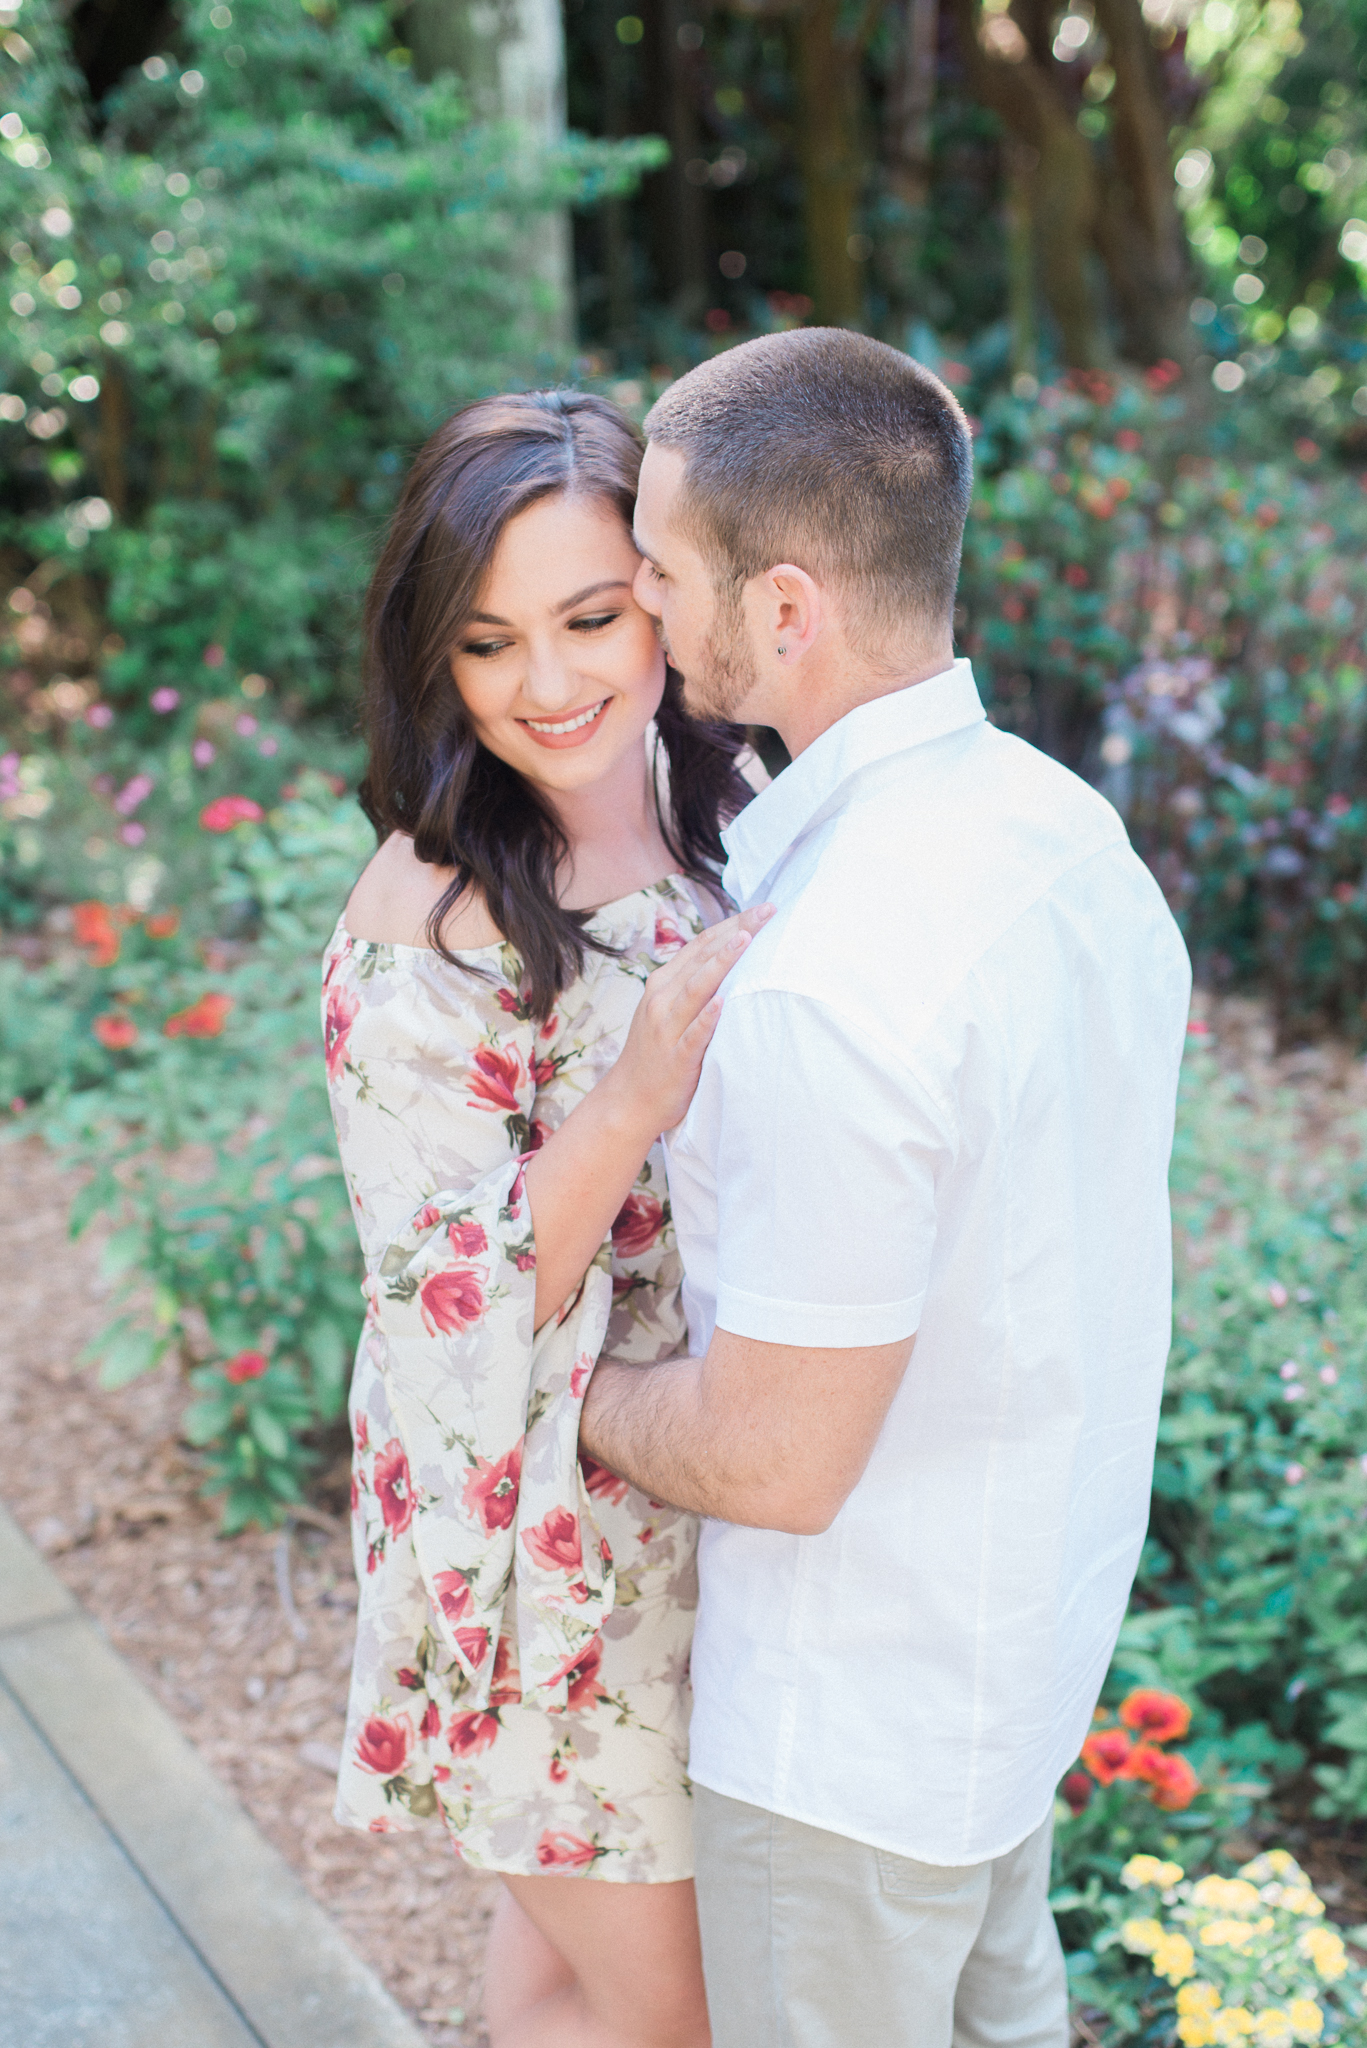 Caitlyn+Mike Engagement Session-WG-11.jpg